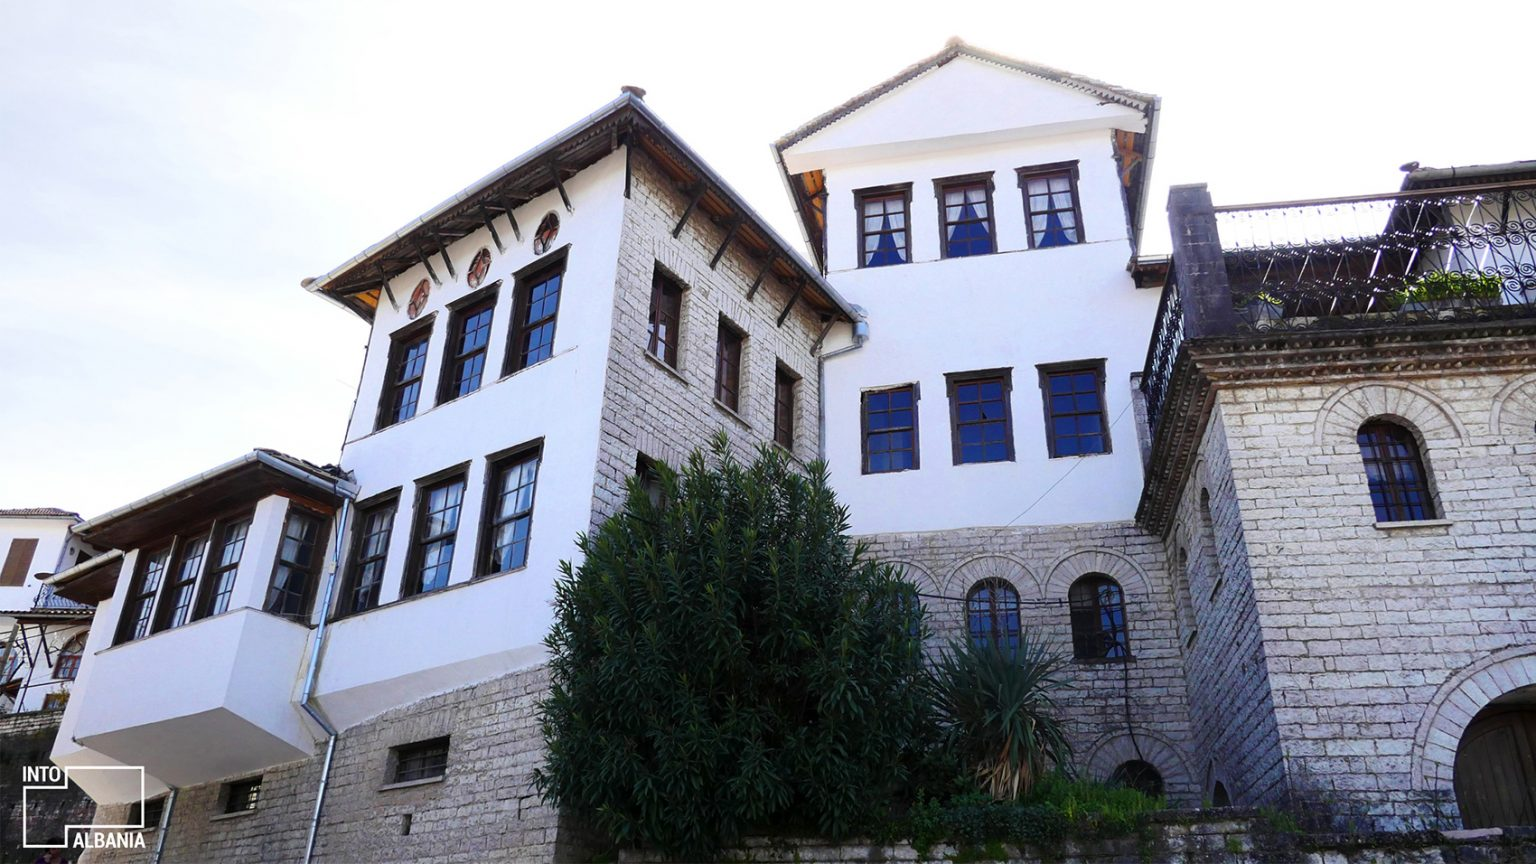 Ethnographic Museum, Gjirokastra, photo by IntoAlbania